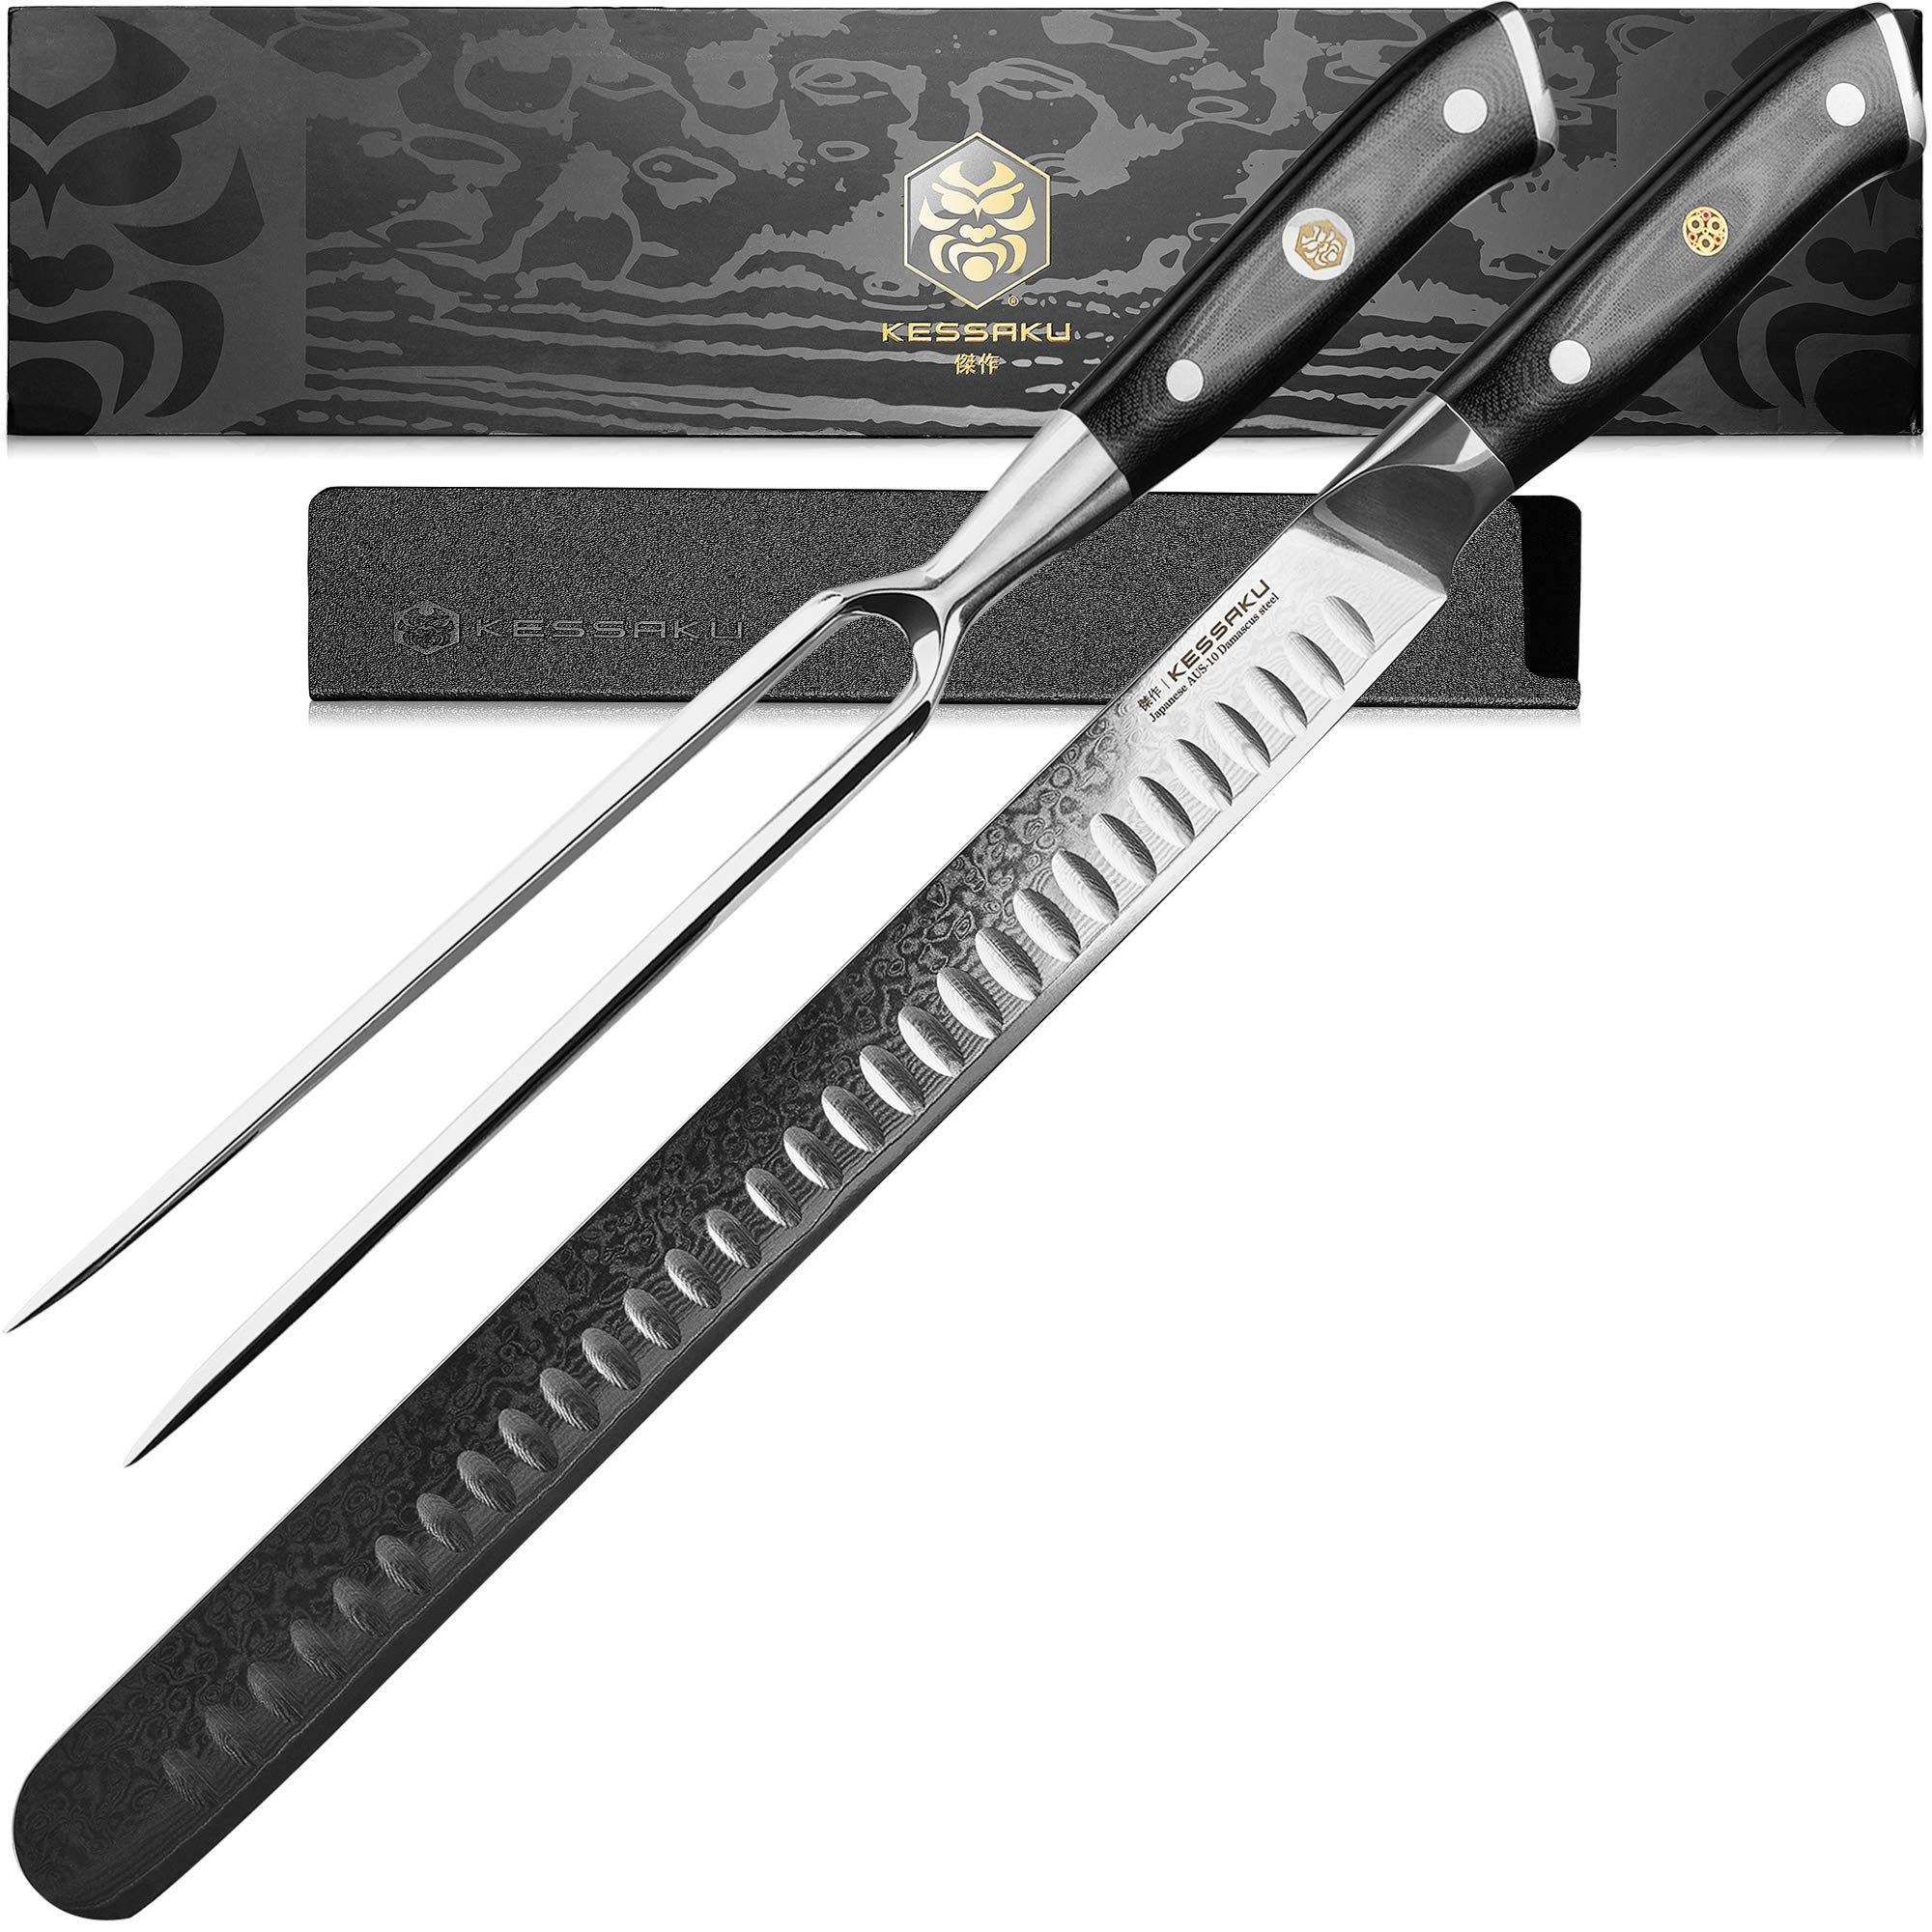 Kessaku 12-Inch Carving Slicing Knife & 7-Inch Meat Fork Set - Dynasty Series - 67-Layer AUS-10V Japanese Damascus Steel - Granton Edge - G10 Full Tang Handle